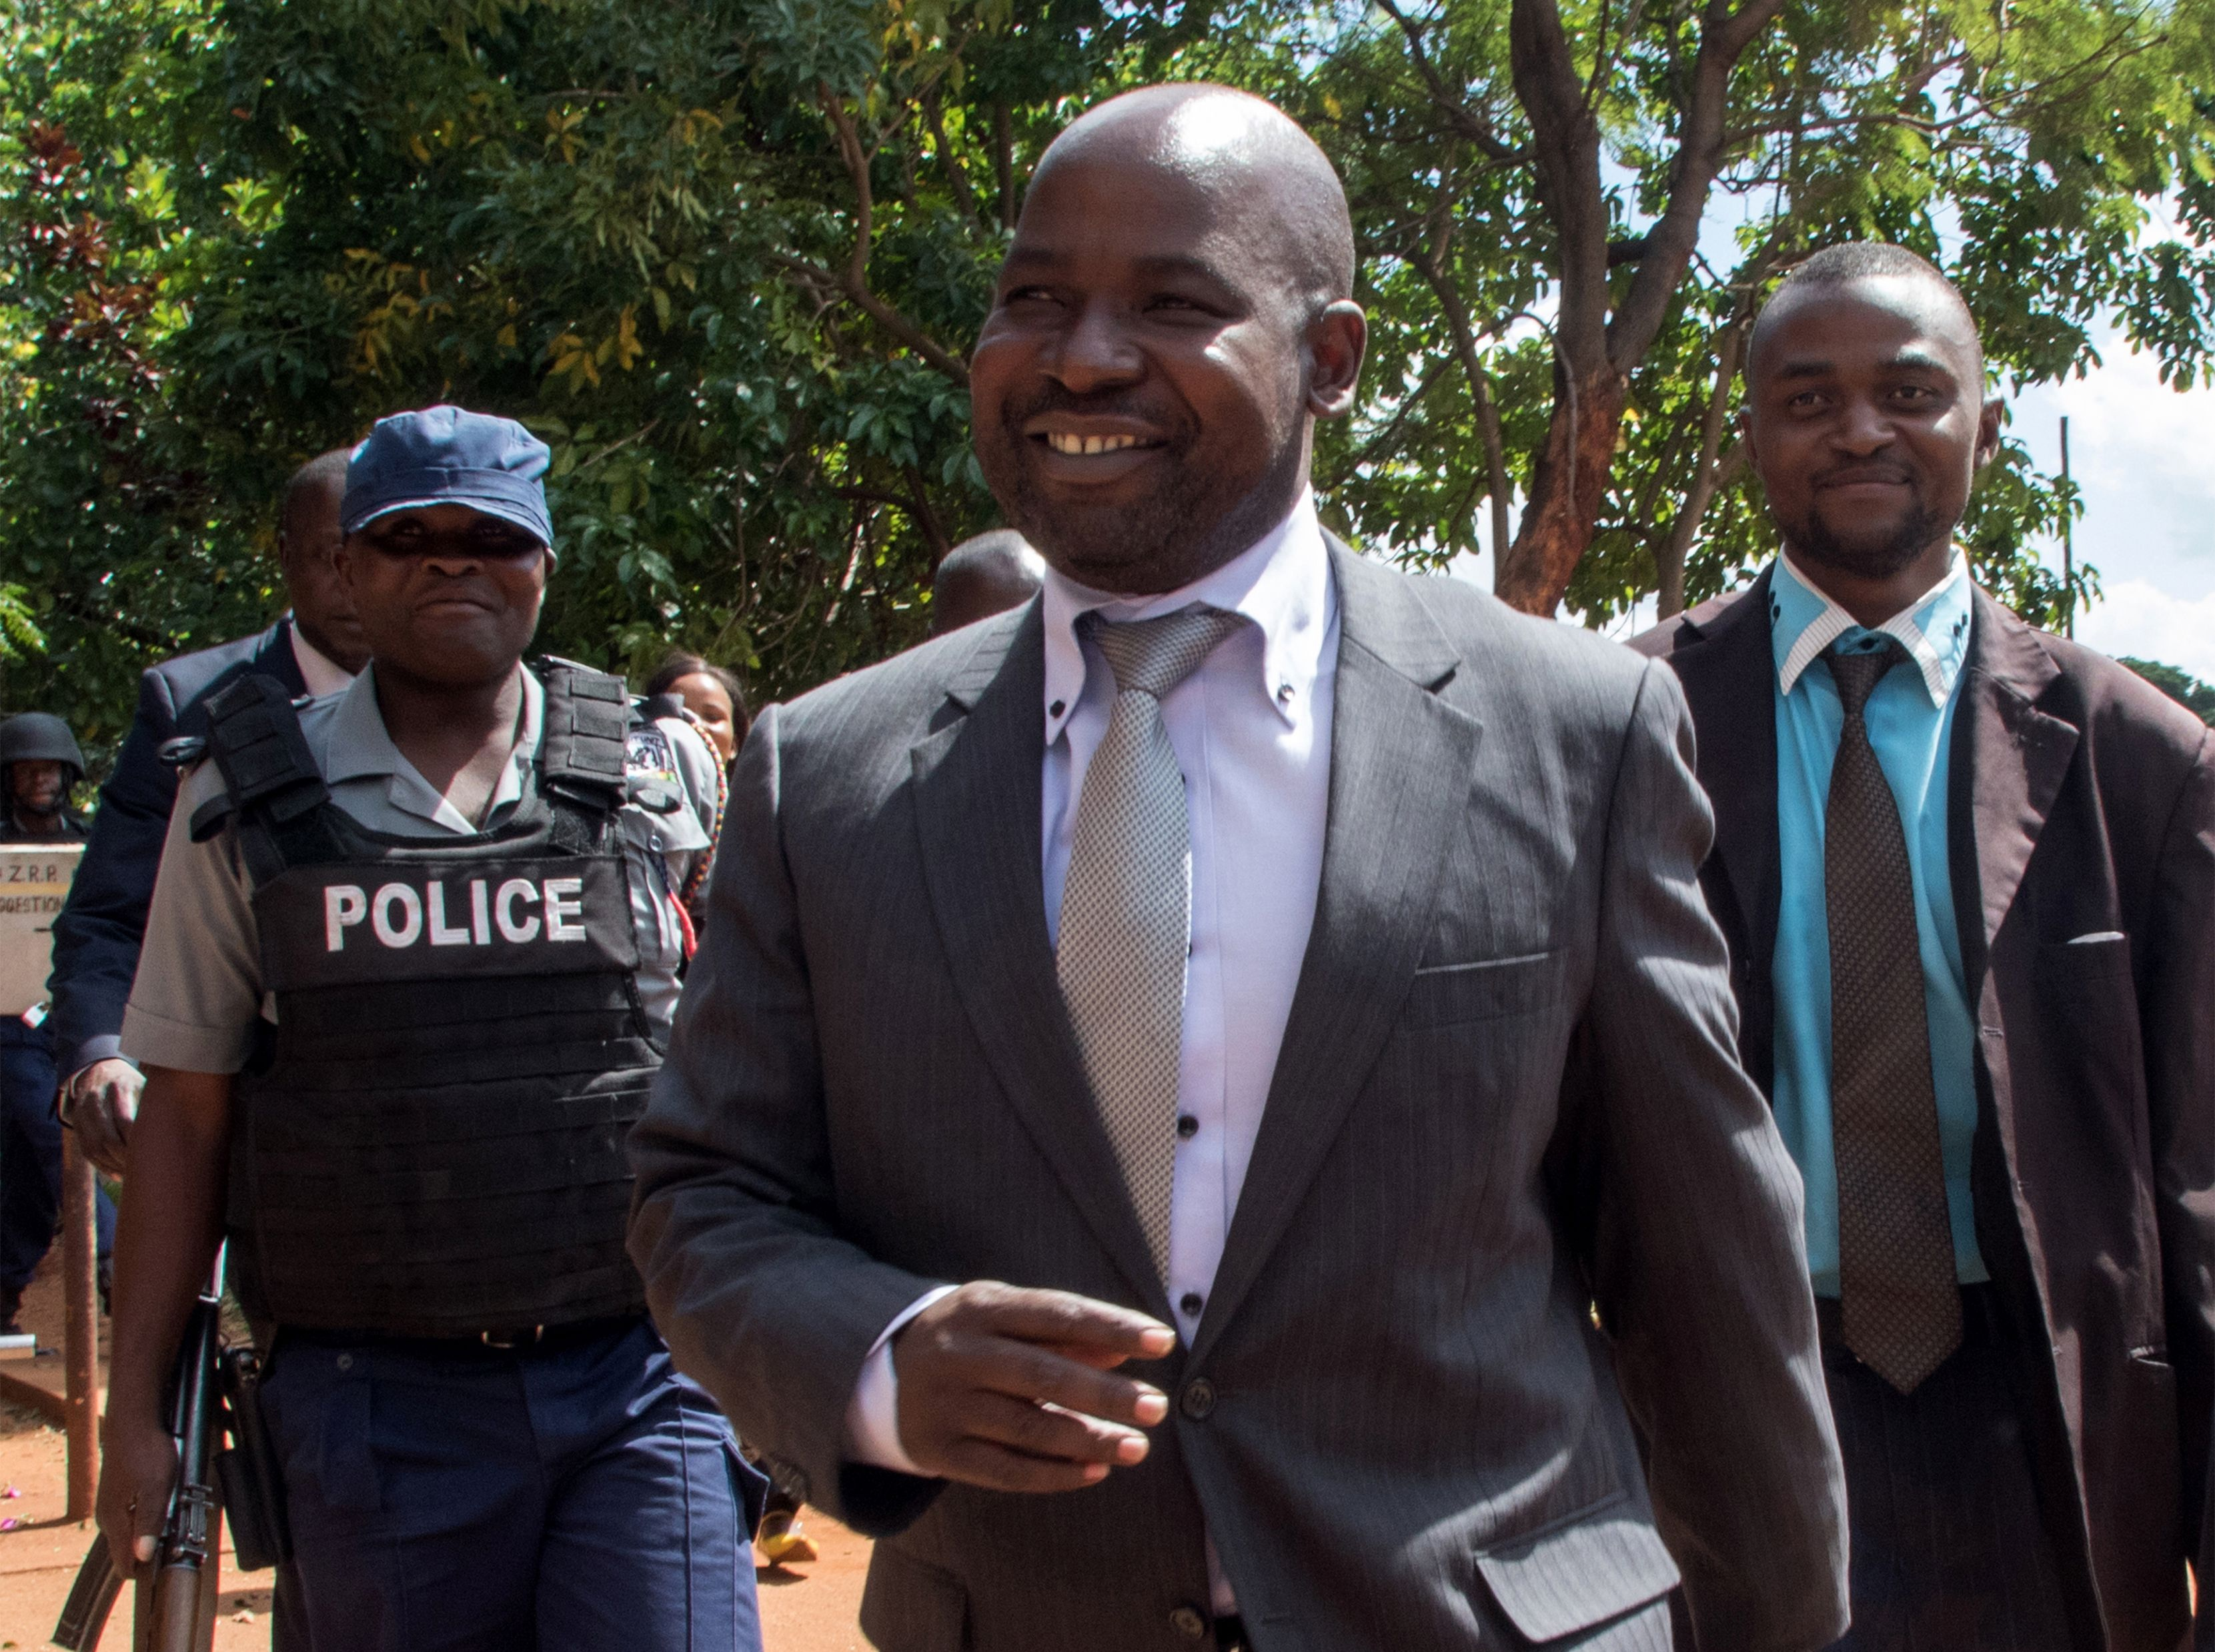 Zimbabwe's chief prosecutor Johannes Tomana (C) arrives at the Harare Magistrates court in Zimbabwe, on Feb. 2, 2016